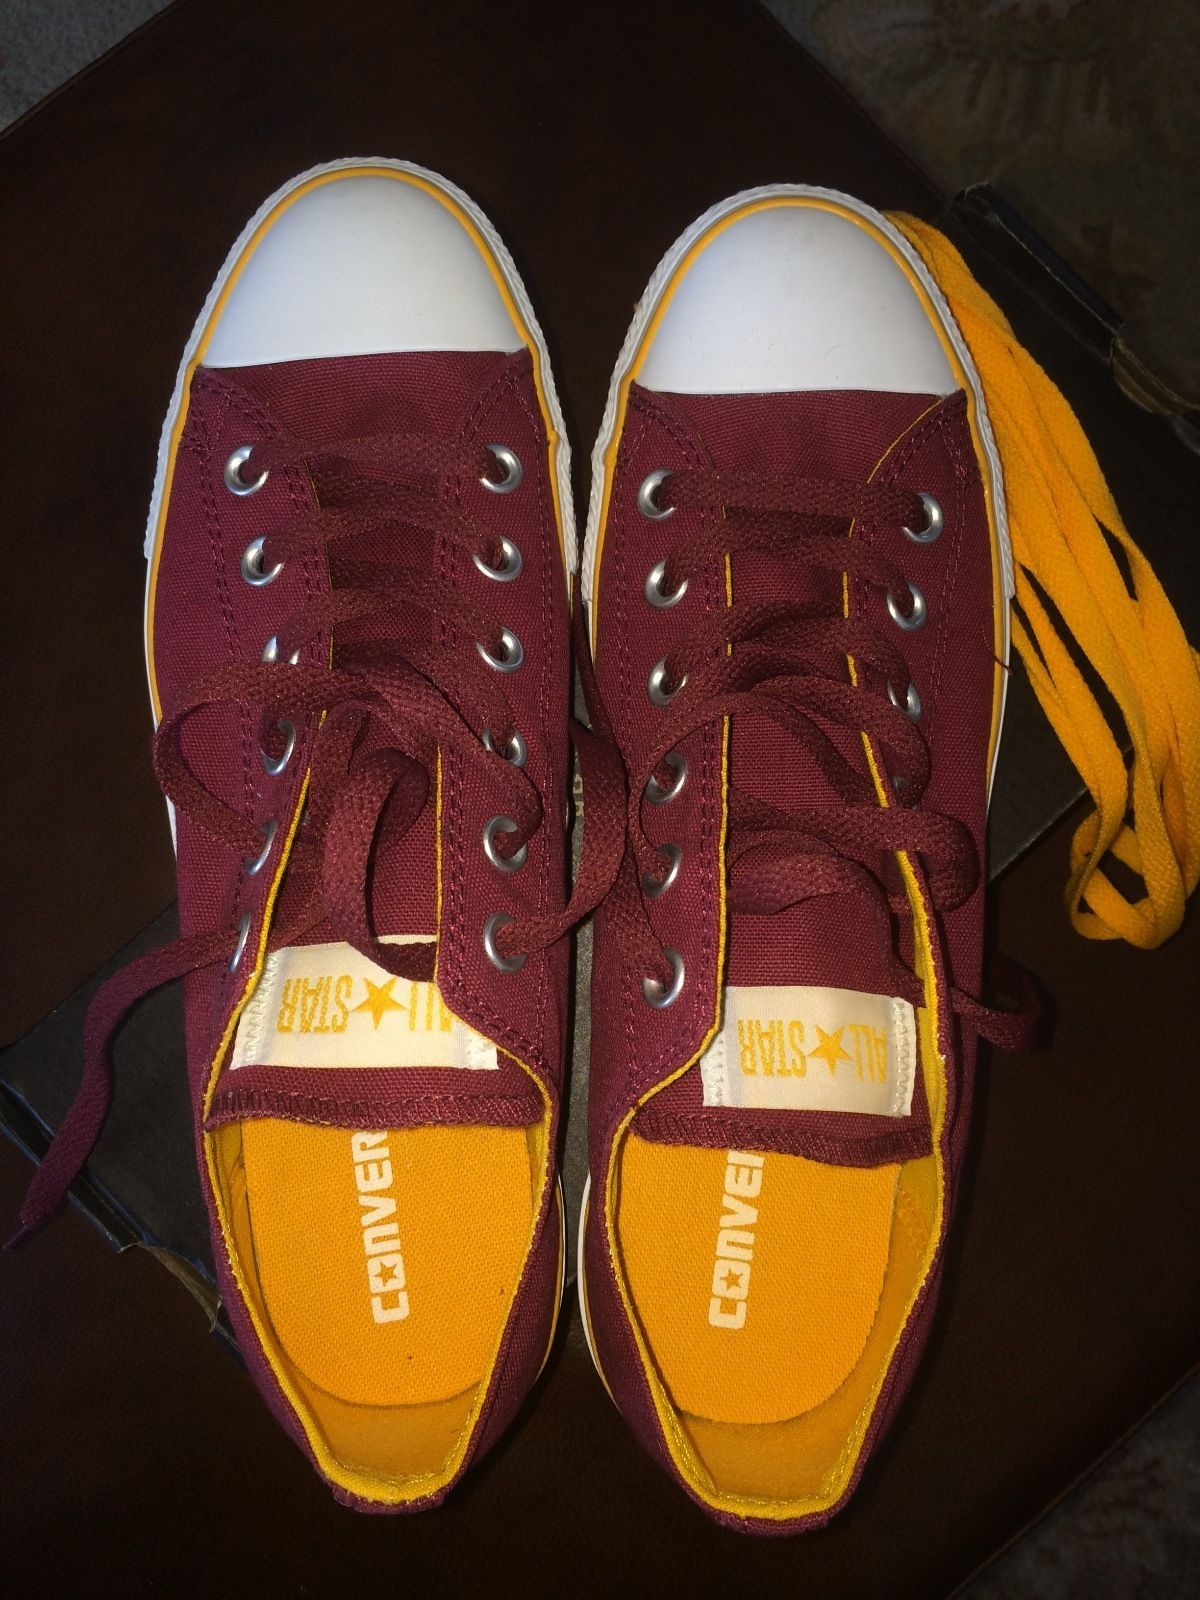 Converse Chuck Taylor Burgundy and Gold Men 8 Women 10 Shoes Red